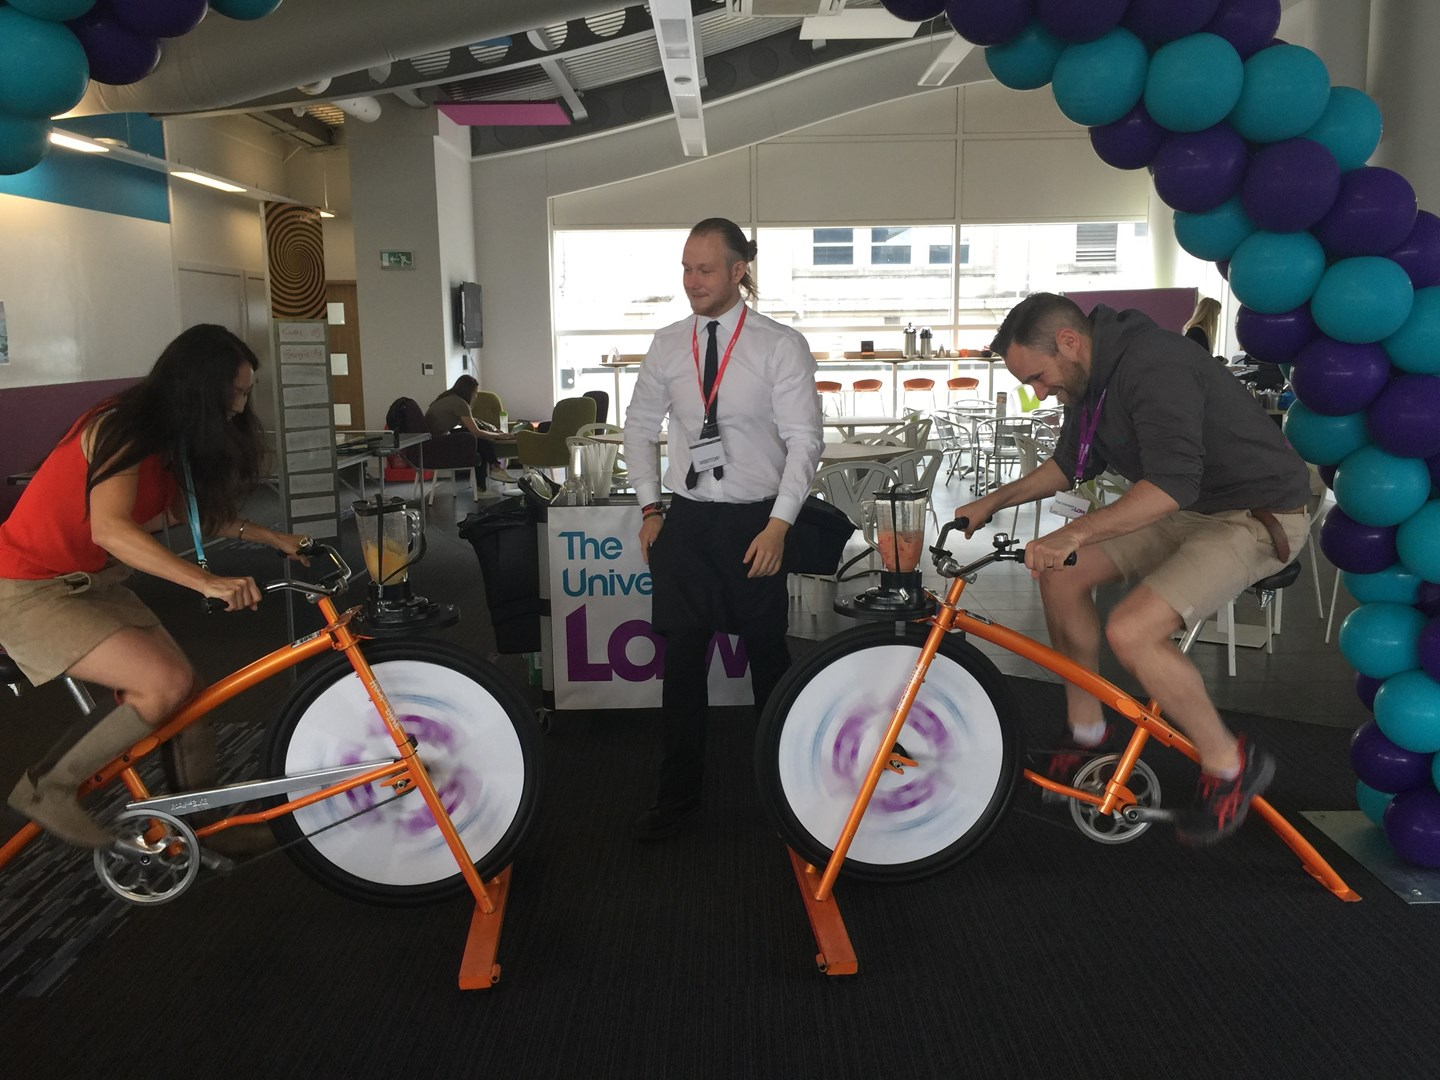 University of Law Leeds students compete on a smoothie bike challenge during Wellbeing Week